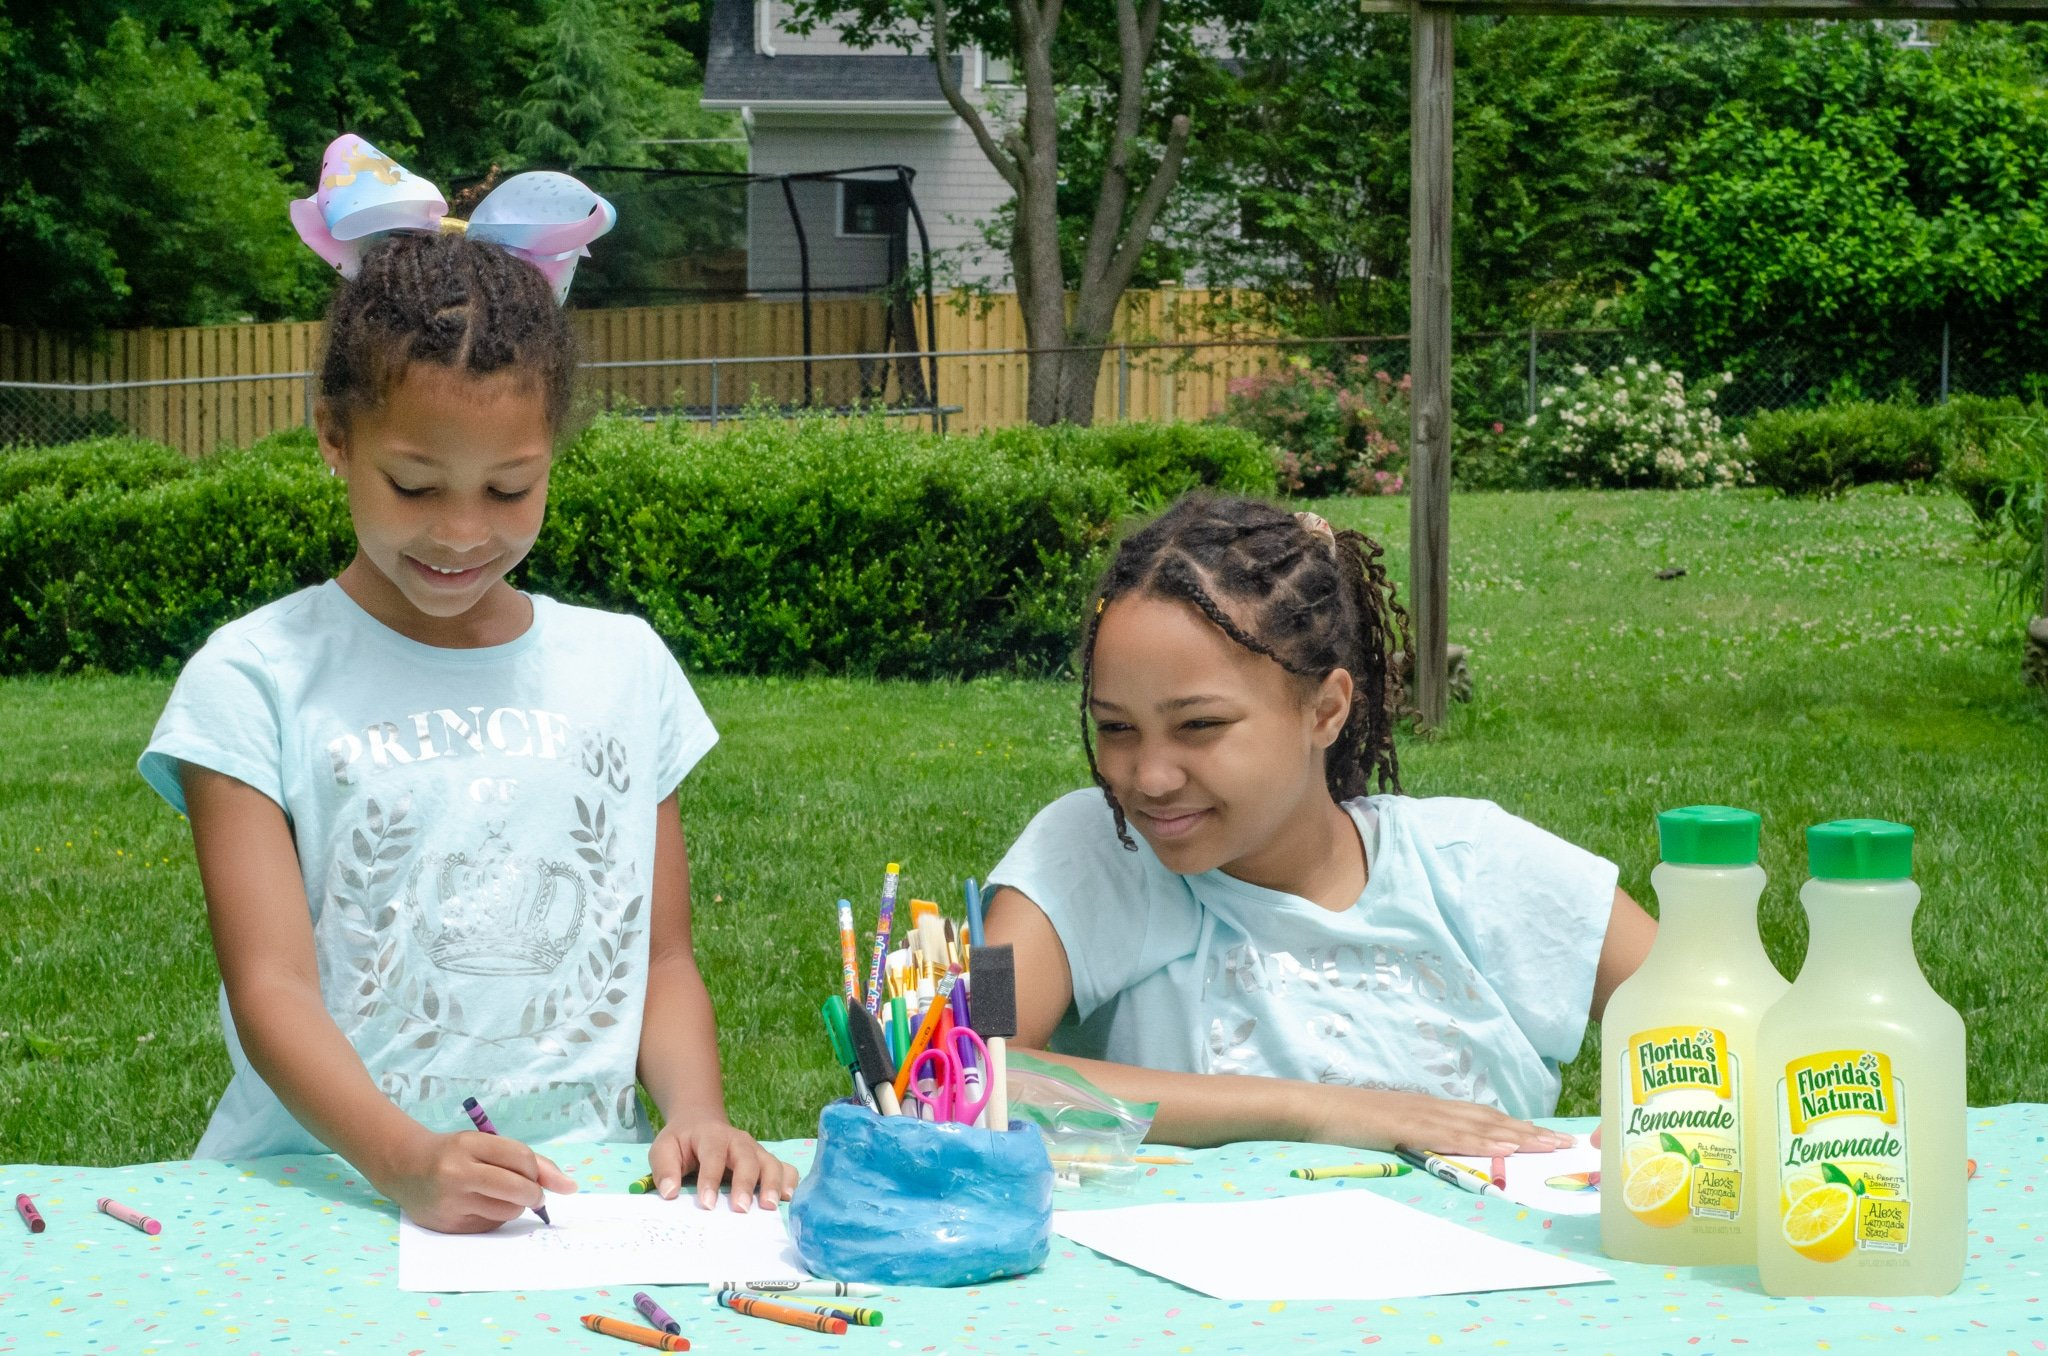 Lemonade Inspired Art Girls Coloring. Looking for a fun way to keep the kids entertained this summer? Celebrate the start of summer with Lemonade-Inspired Art In the Backyard.